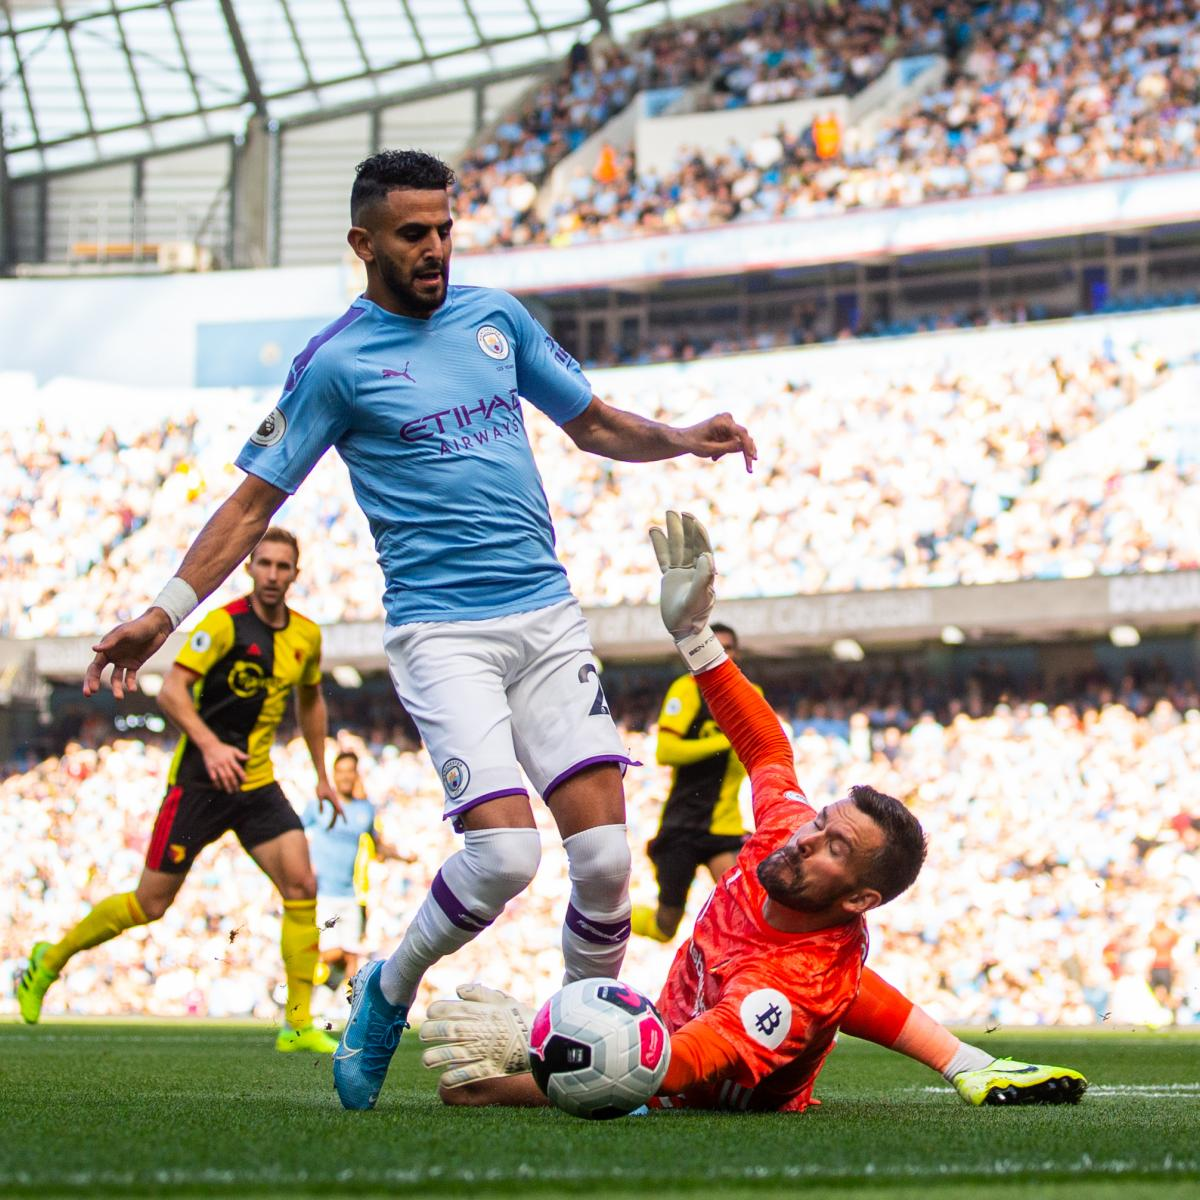 EPL Results: Saturday's Week 6 Scores, Updated 2019 Premier League Table